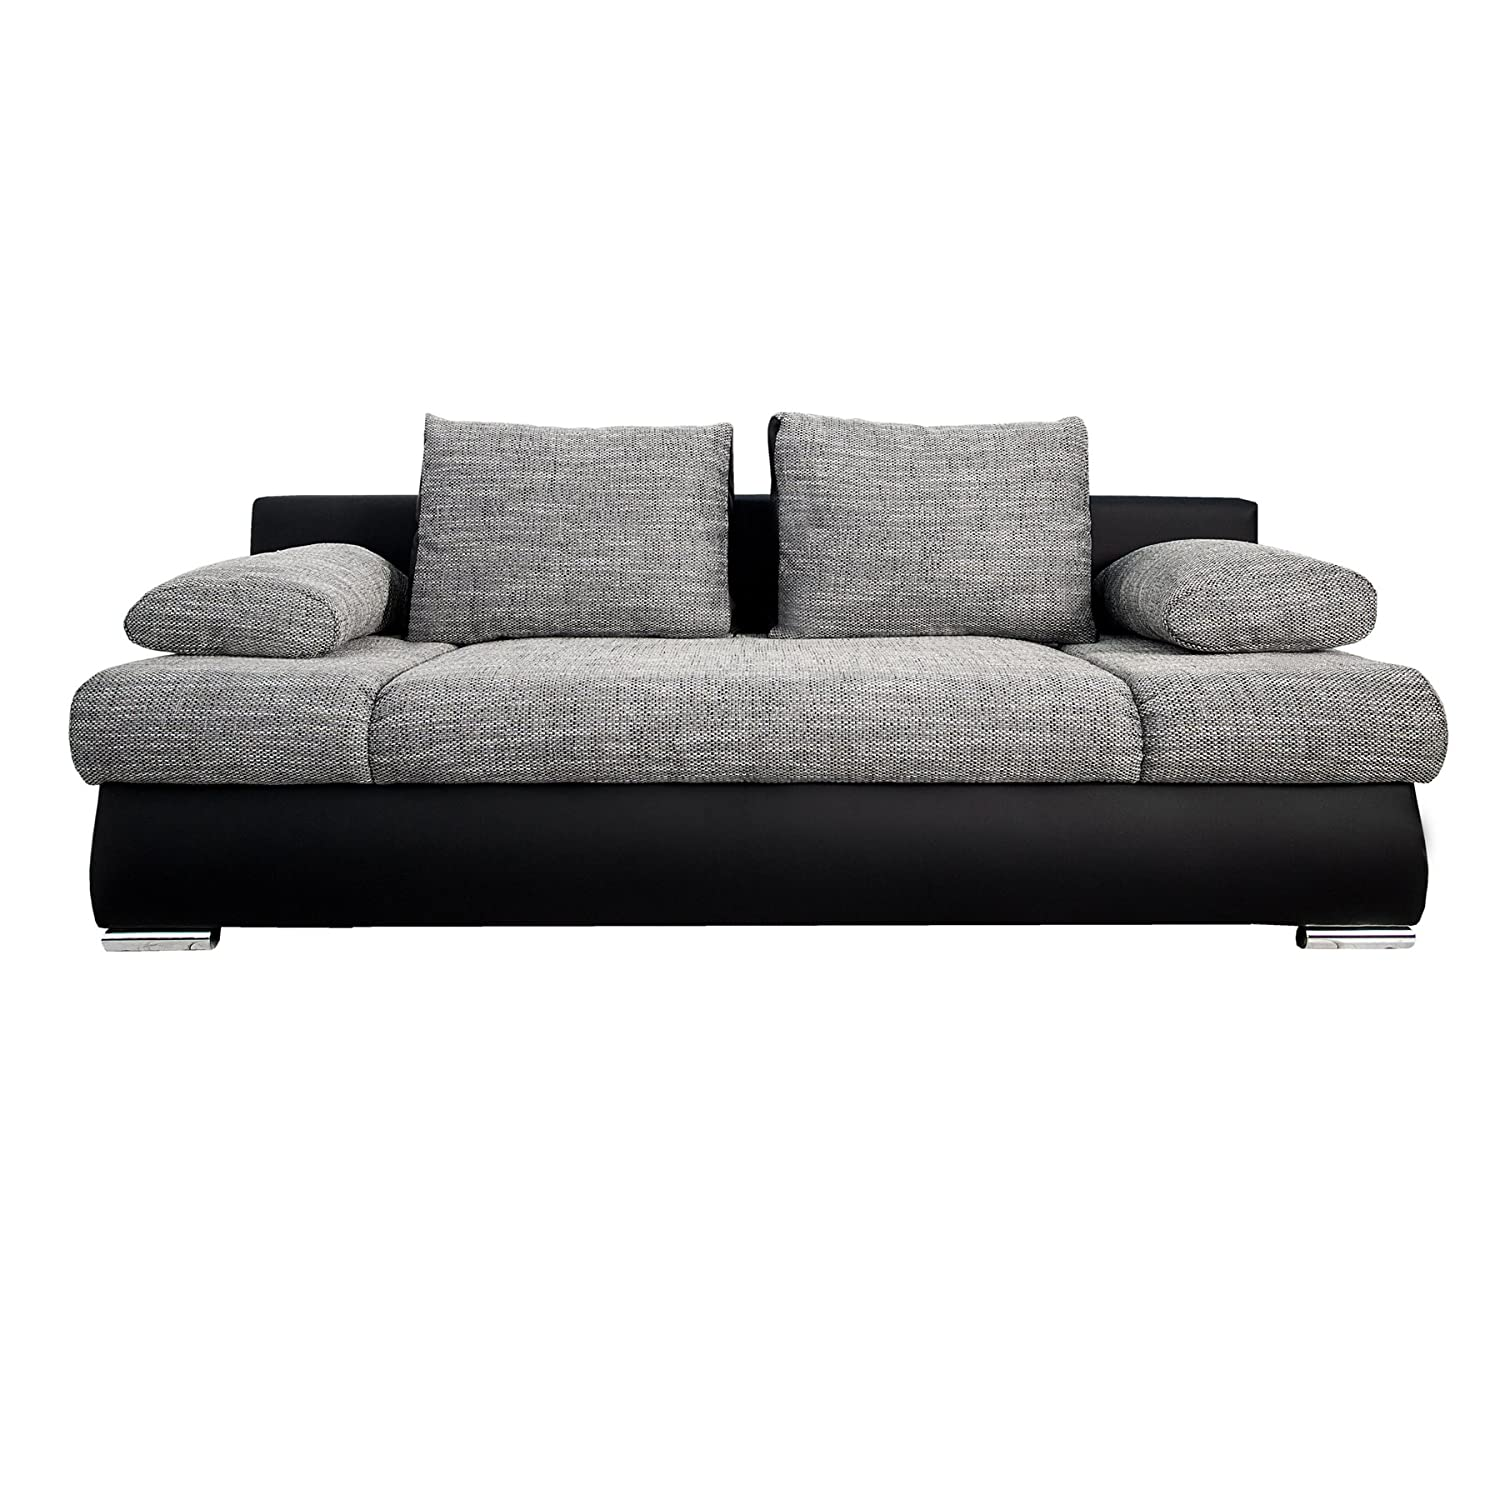 schlafsofa mit bettkasten 140 200. Black Bedroom Furniture Sets. Home Design Ideas